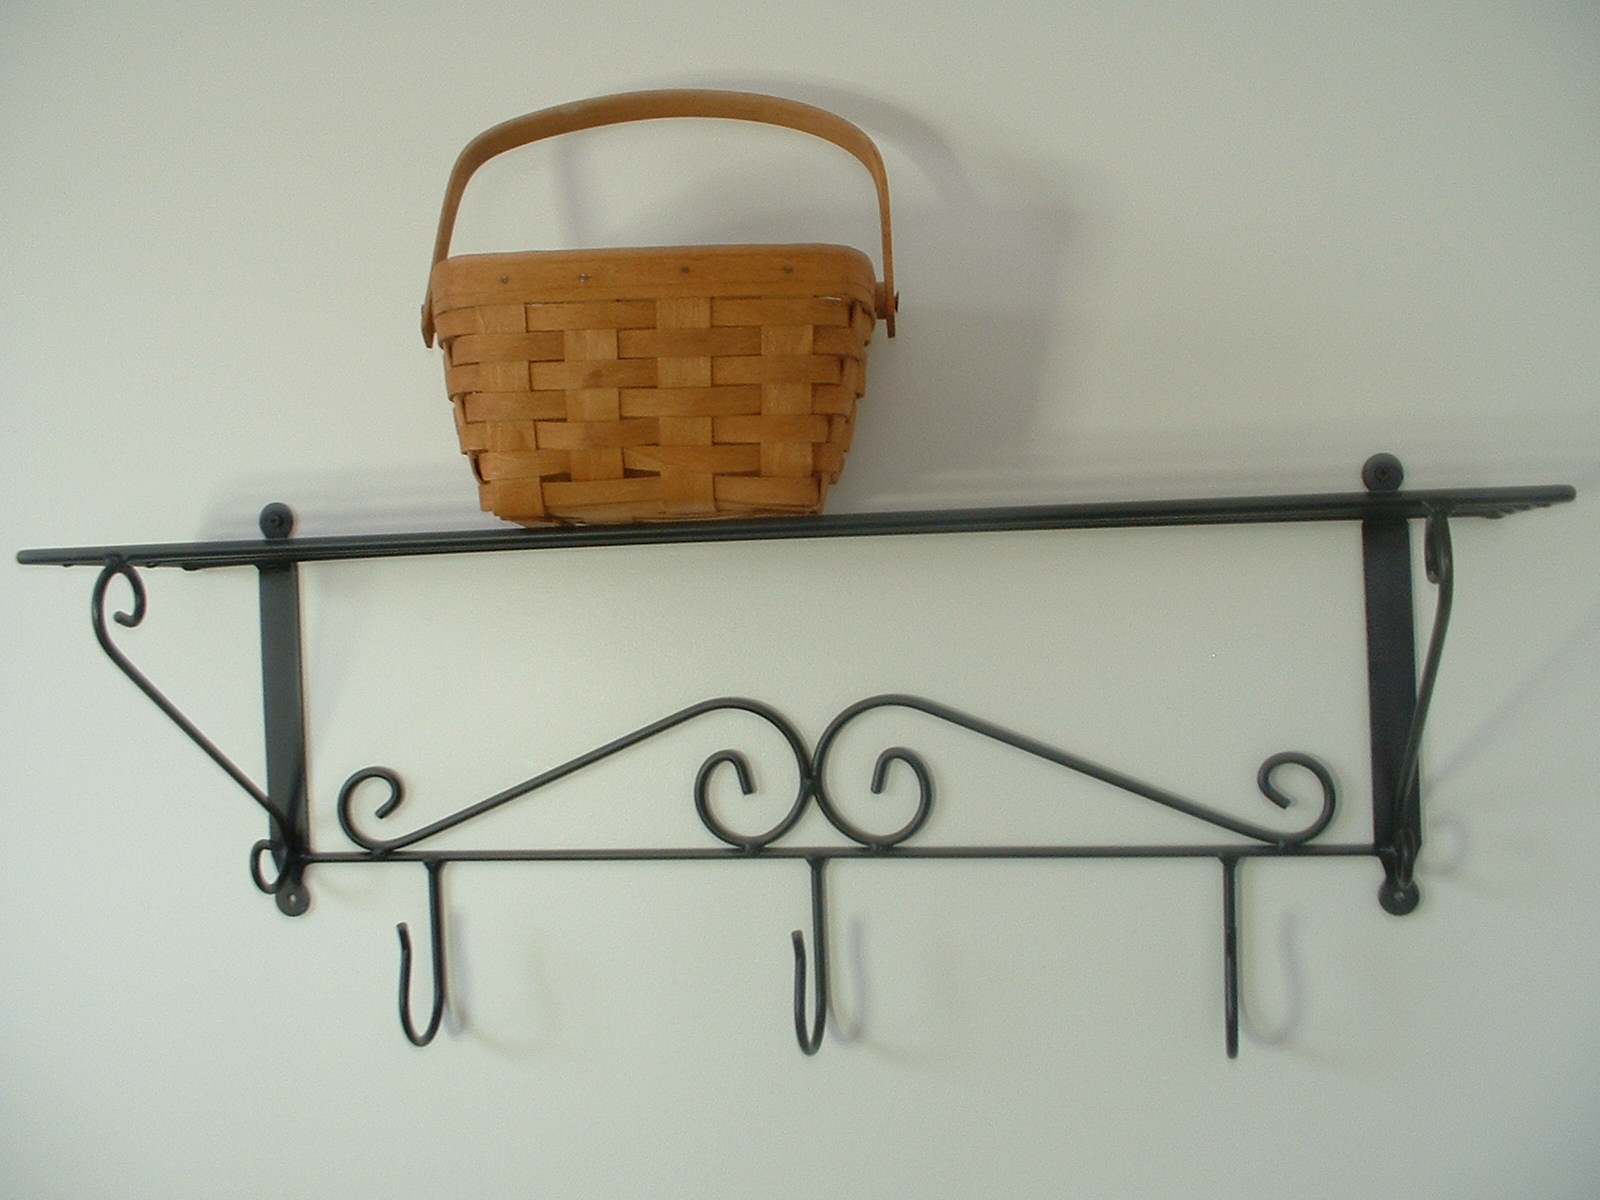 Wrought Iron Basket Display Items, Shelves, More!